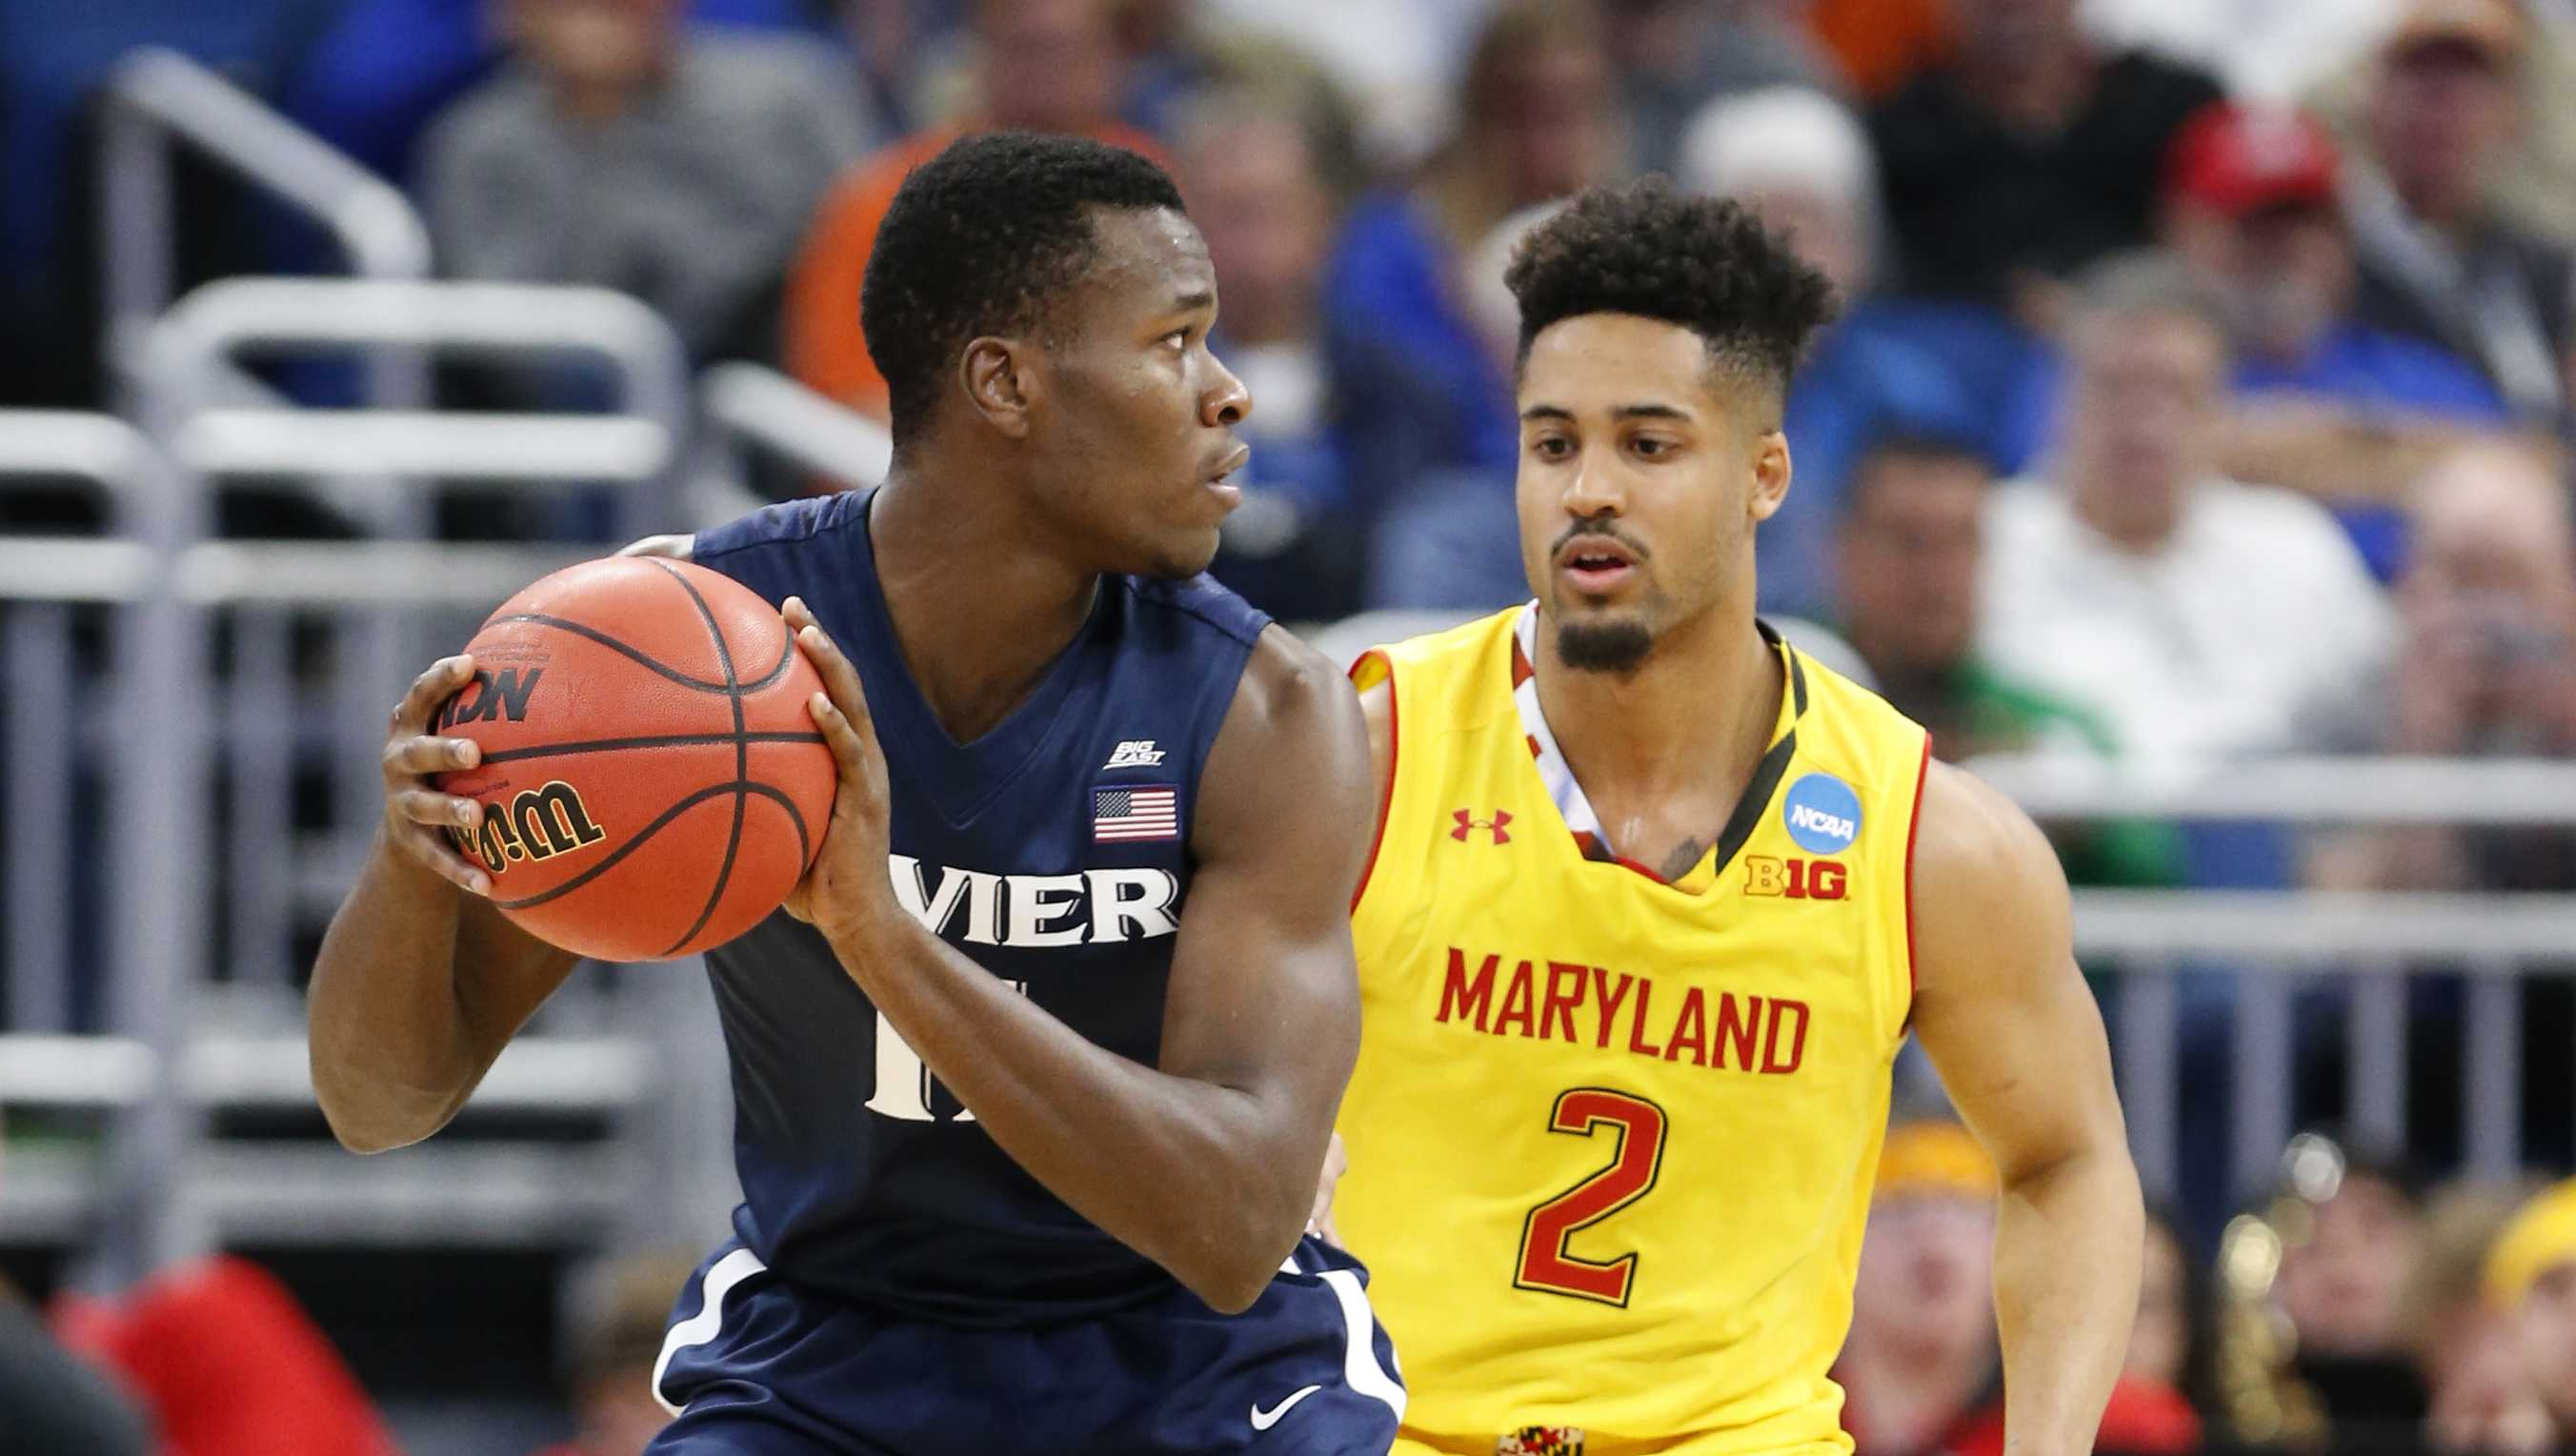 Xavier guard Malcolm Bernard (11) looks for an opening past Maryland guard Melo Trimble (2) during the first half of the first round of the NCAA college basketball tournament, Thursday, March 16, 2017 in Orlando, Fla.